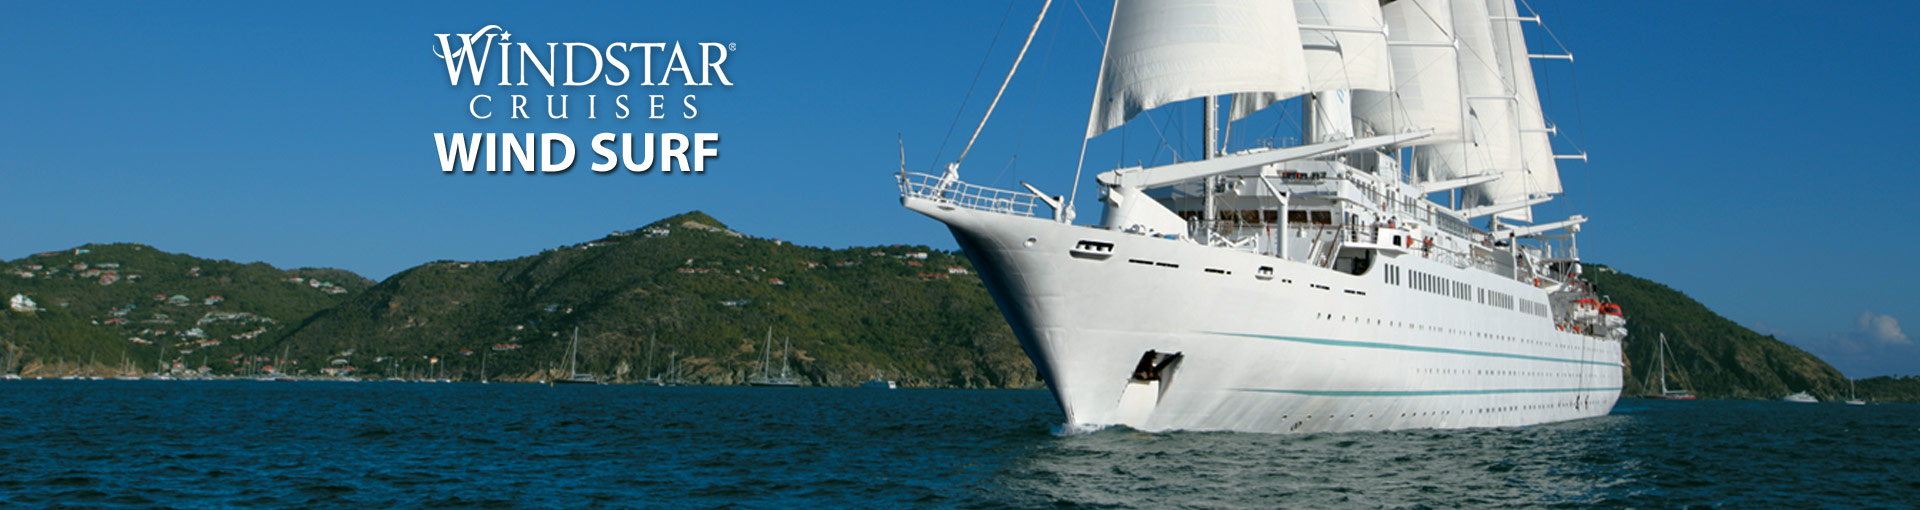 Windstar Wind Surf Cruise Ship And Windstar Wind Surf - Find cruises